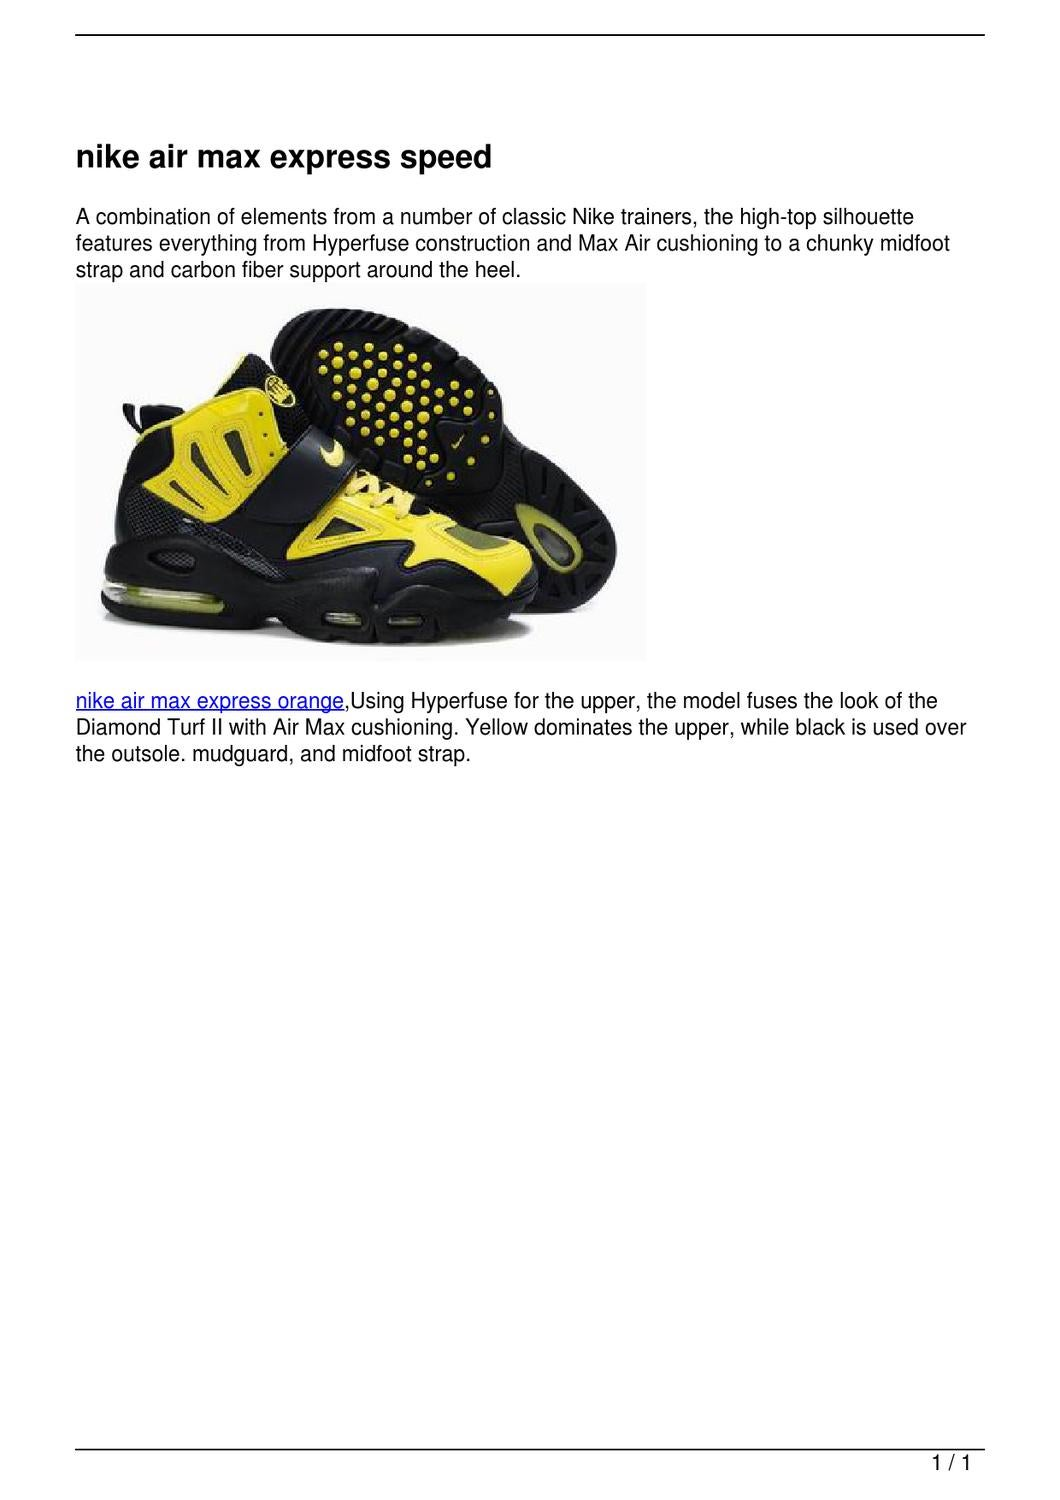 outlet store f846b 09f79 nike air max express speed by mu mao - issuu